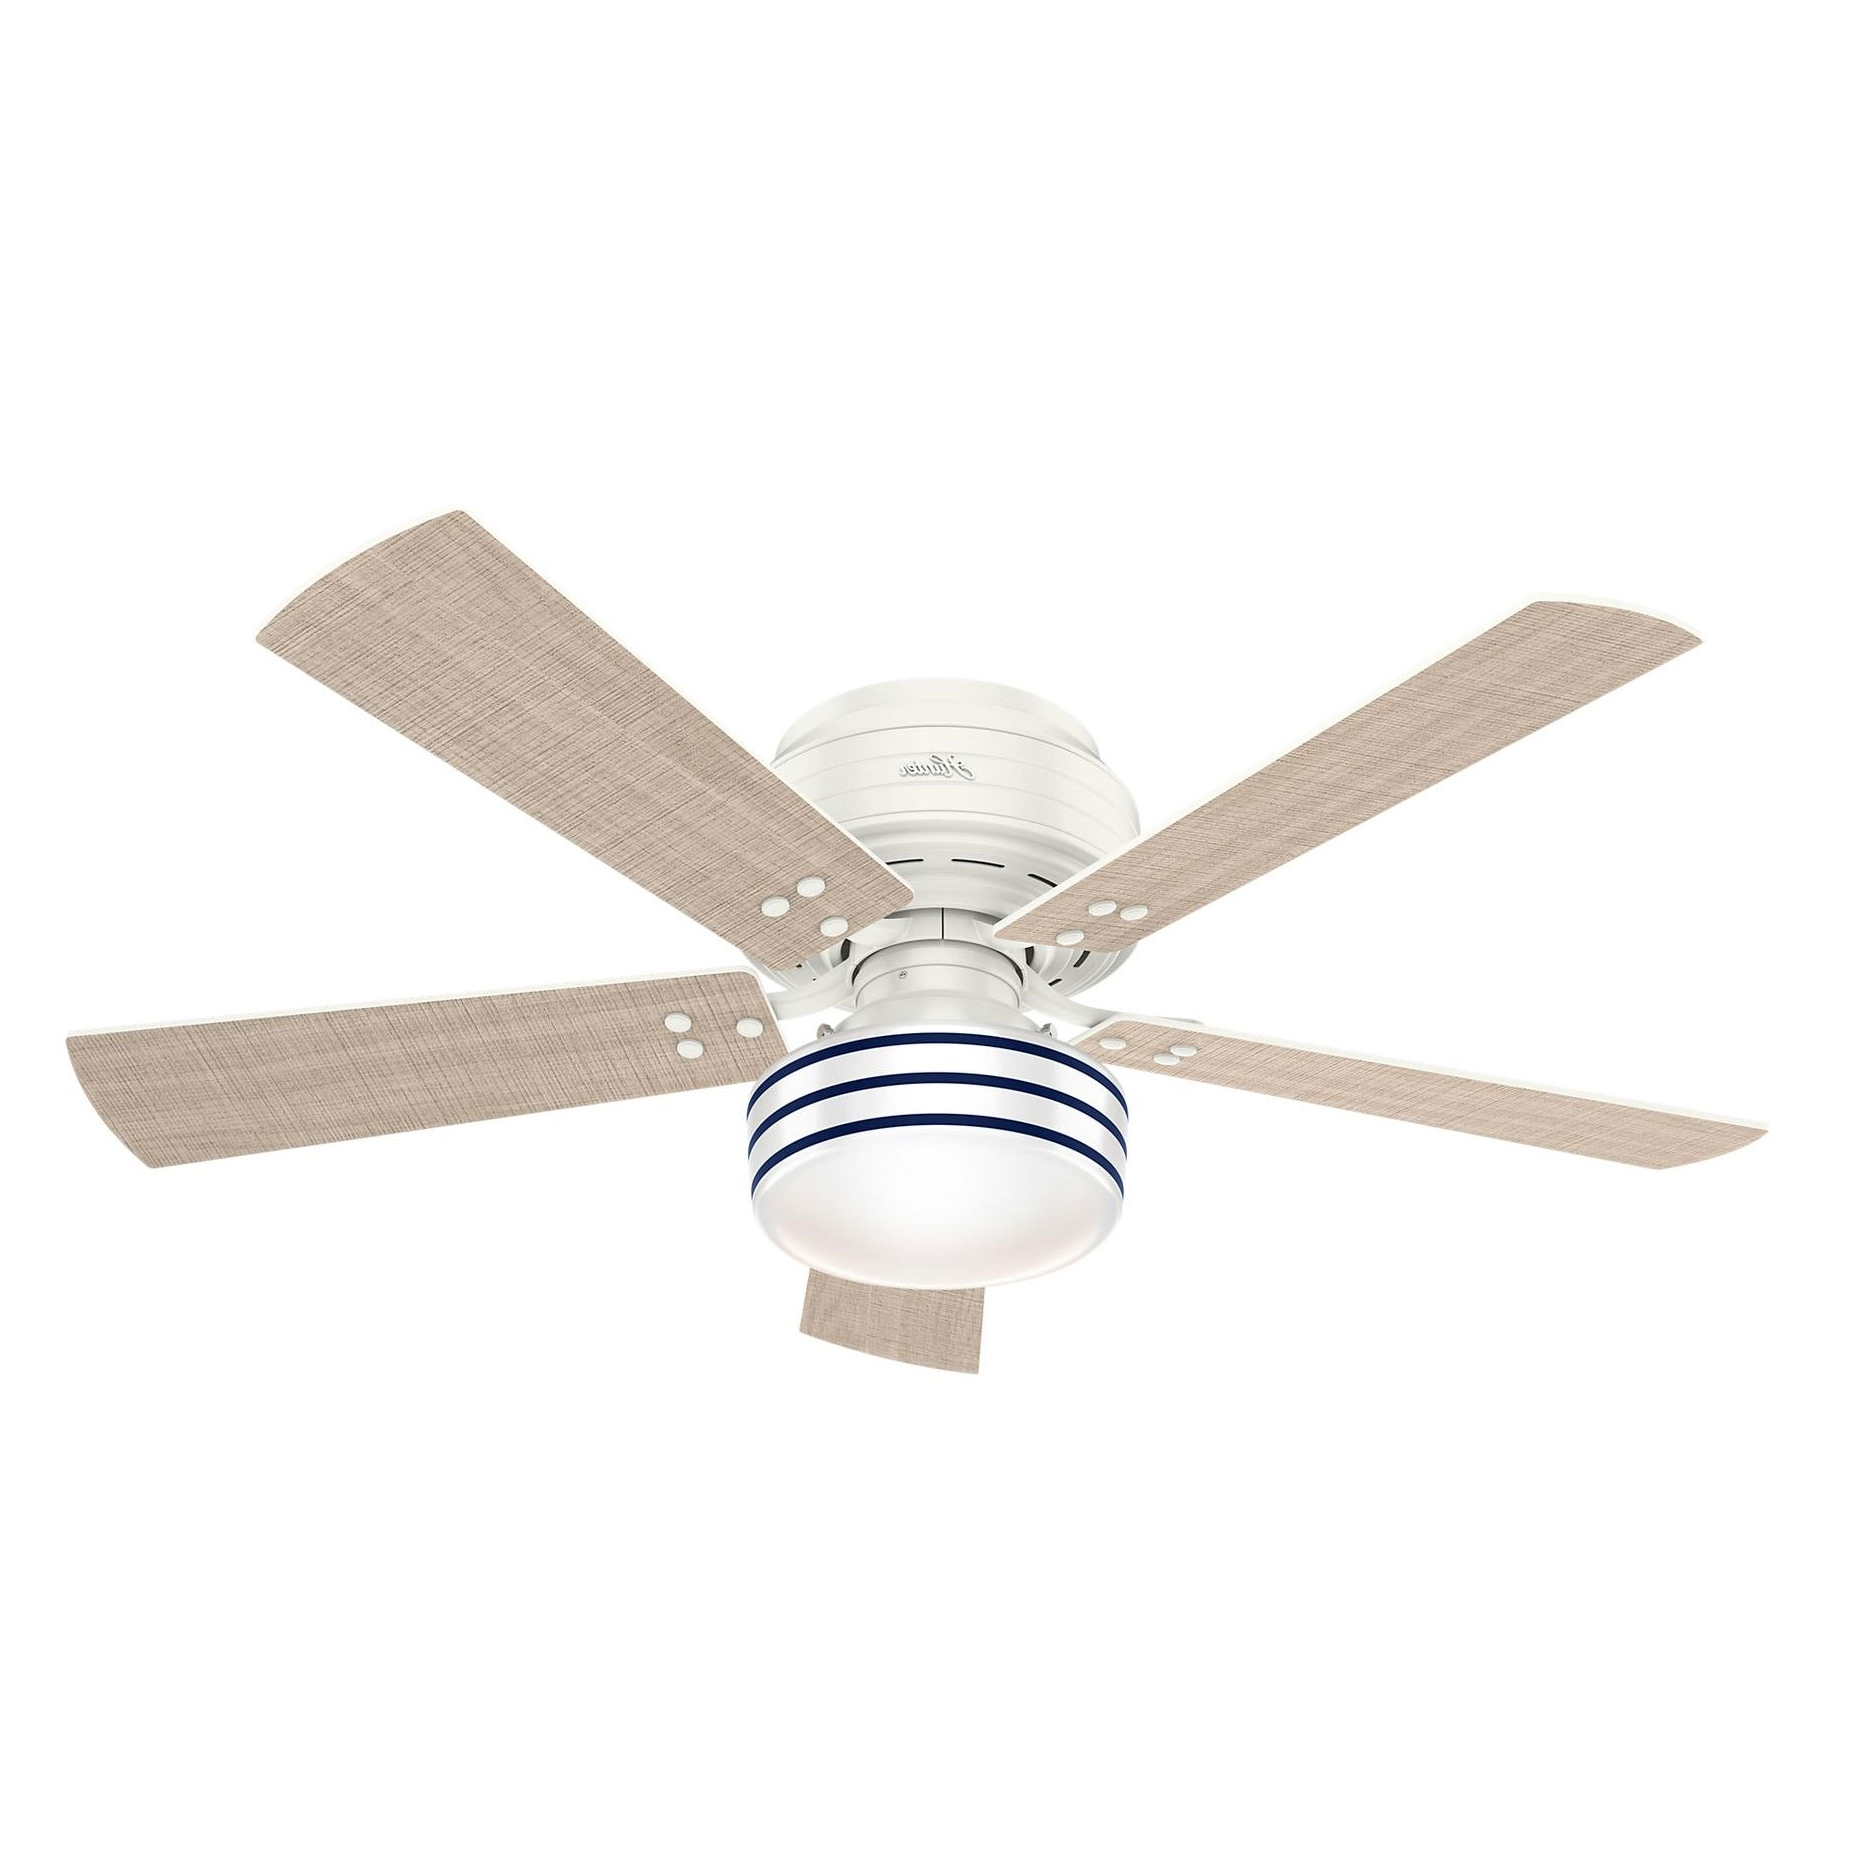 Cedar Key Low Profile Indoor/outdoor Ceiling Fan With Light Inside Newest Low Profile Outdoor Ceiling Fans With Lights (View 3 of 20)